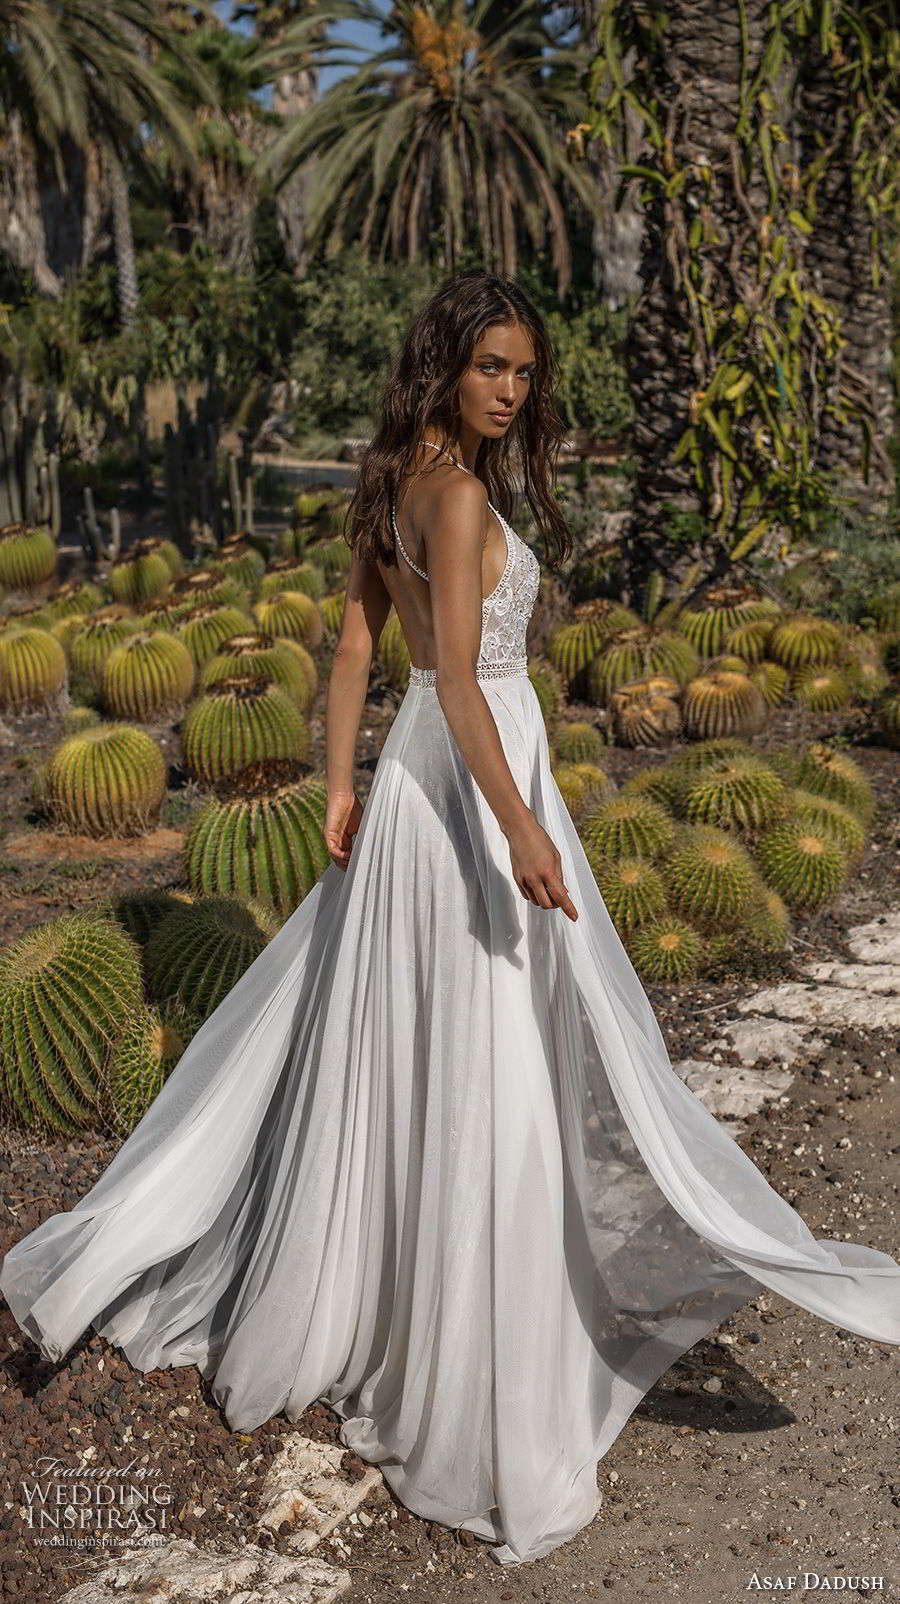 ab070acf142 asaf dadush 2018 bridal sleevless halter jswel neck heavily embellished  bodice double slit skirt romantic soft